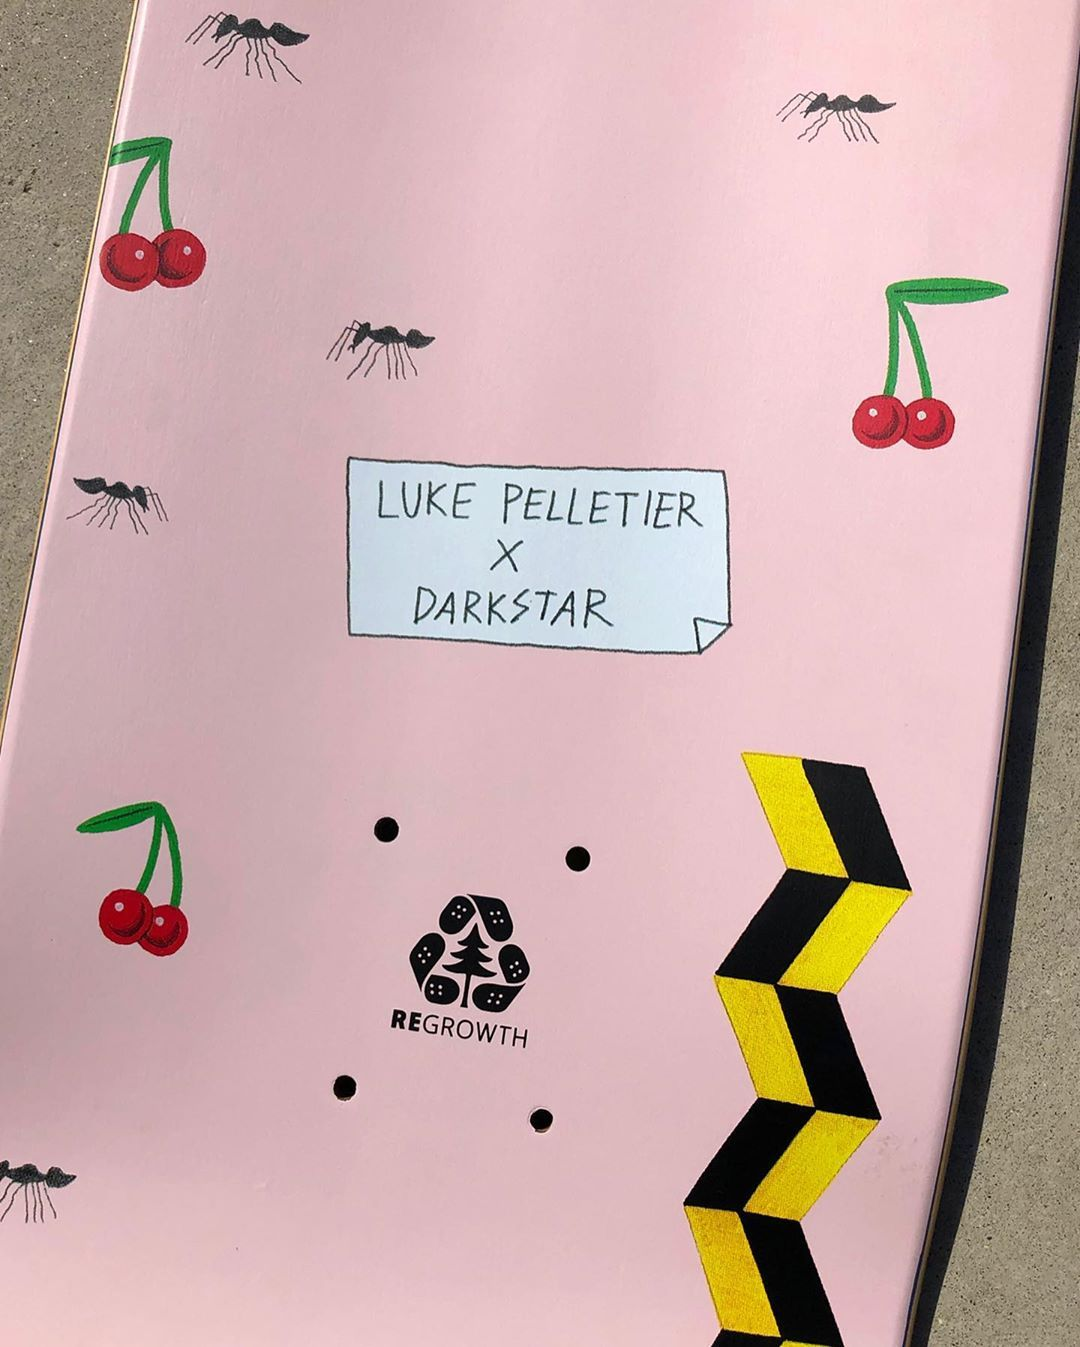 Guest Artist Pro Series By Luke Pelletier X Darkstar Skate 8